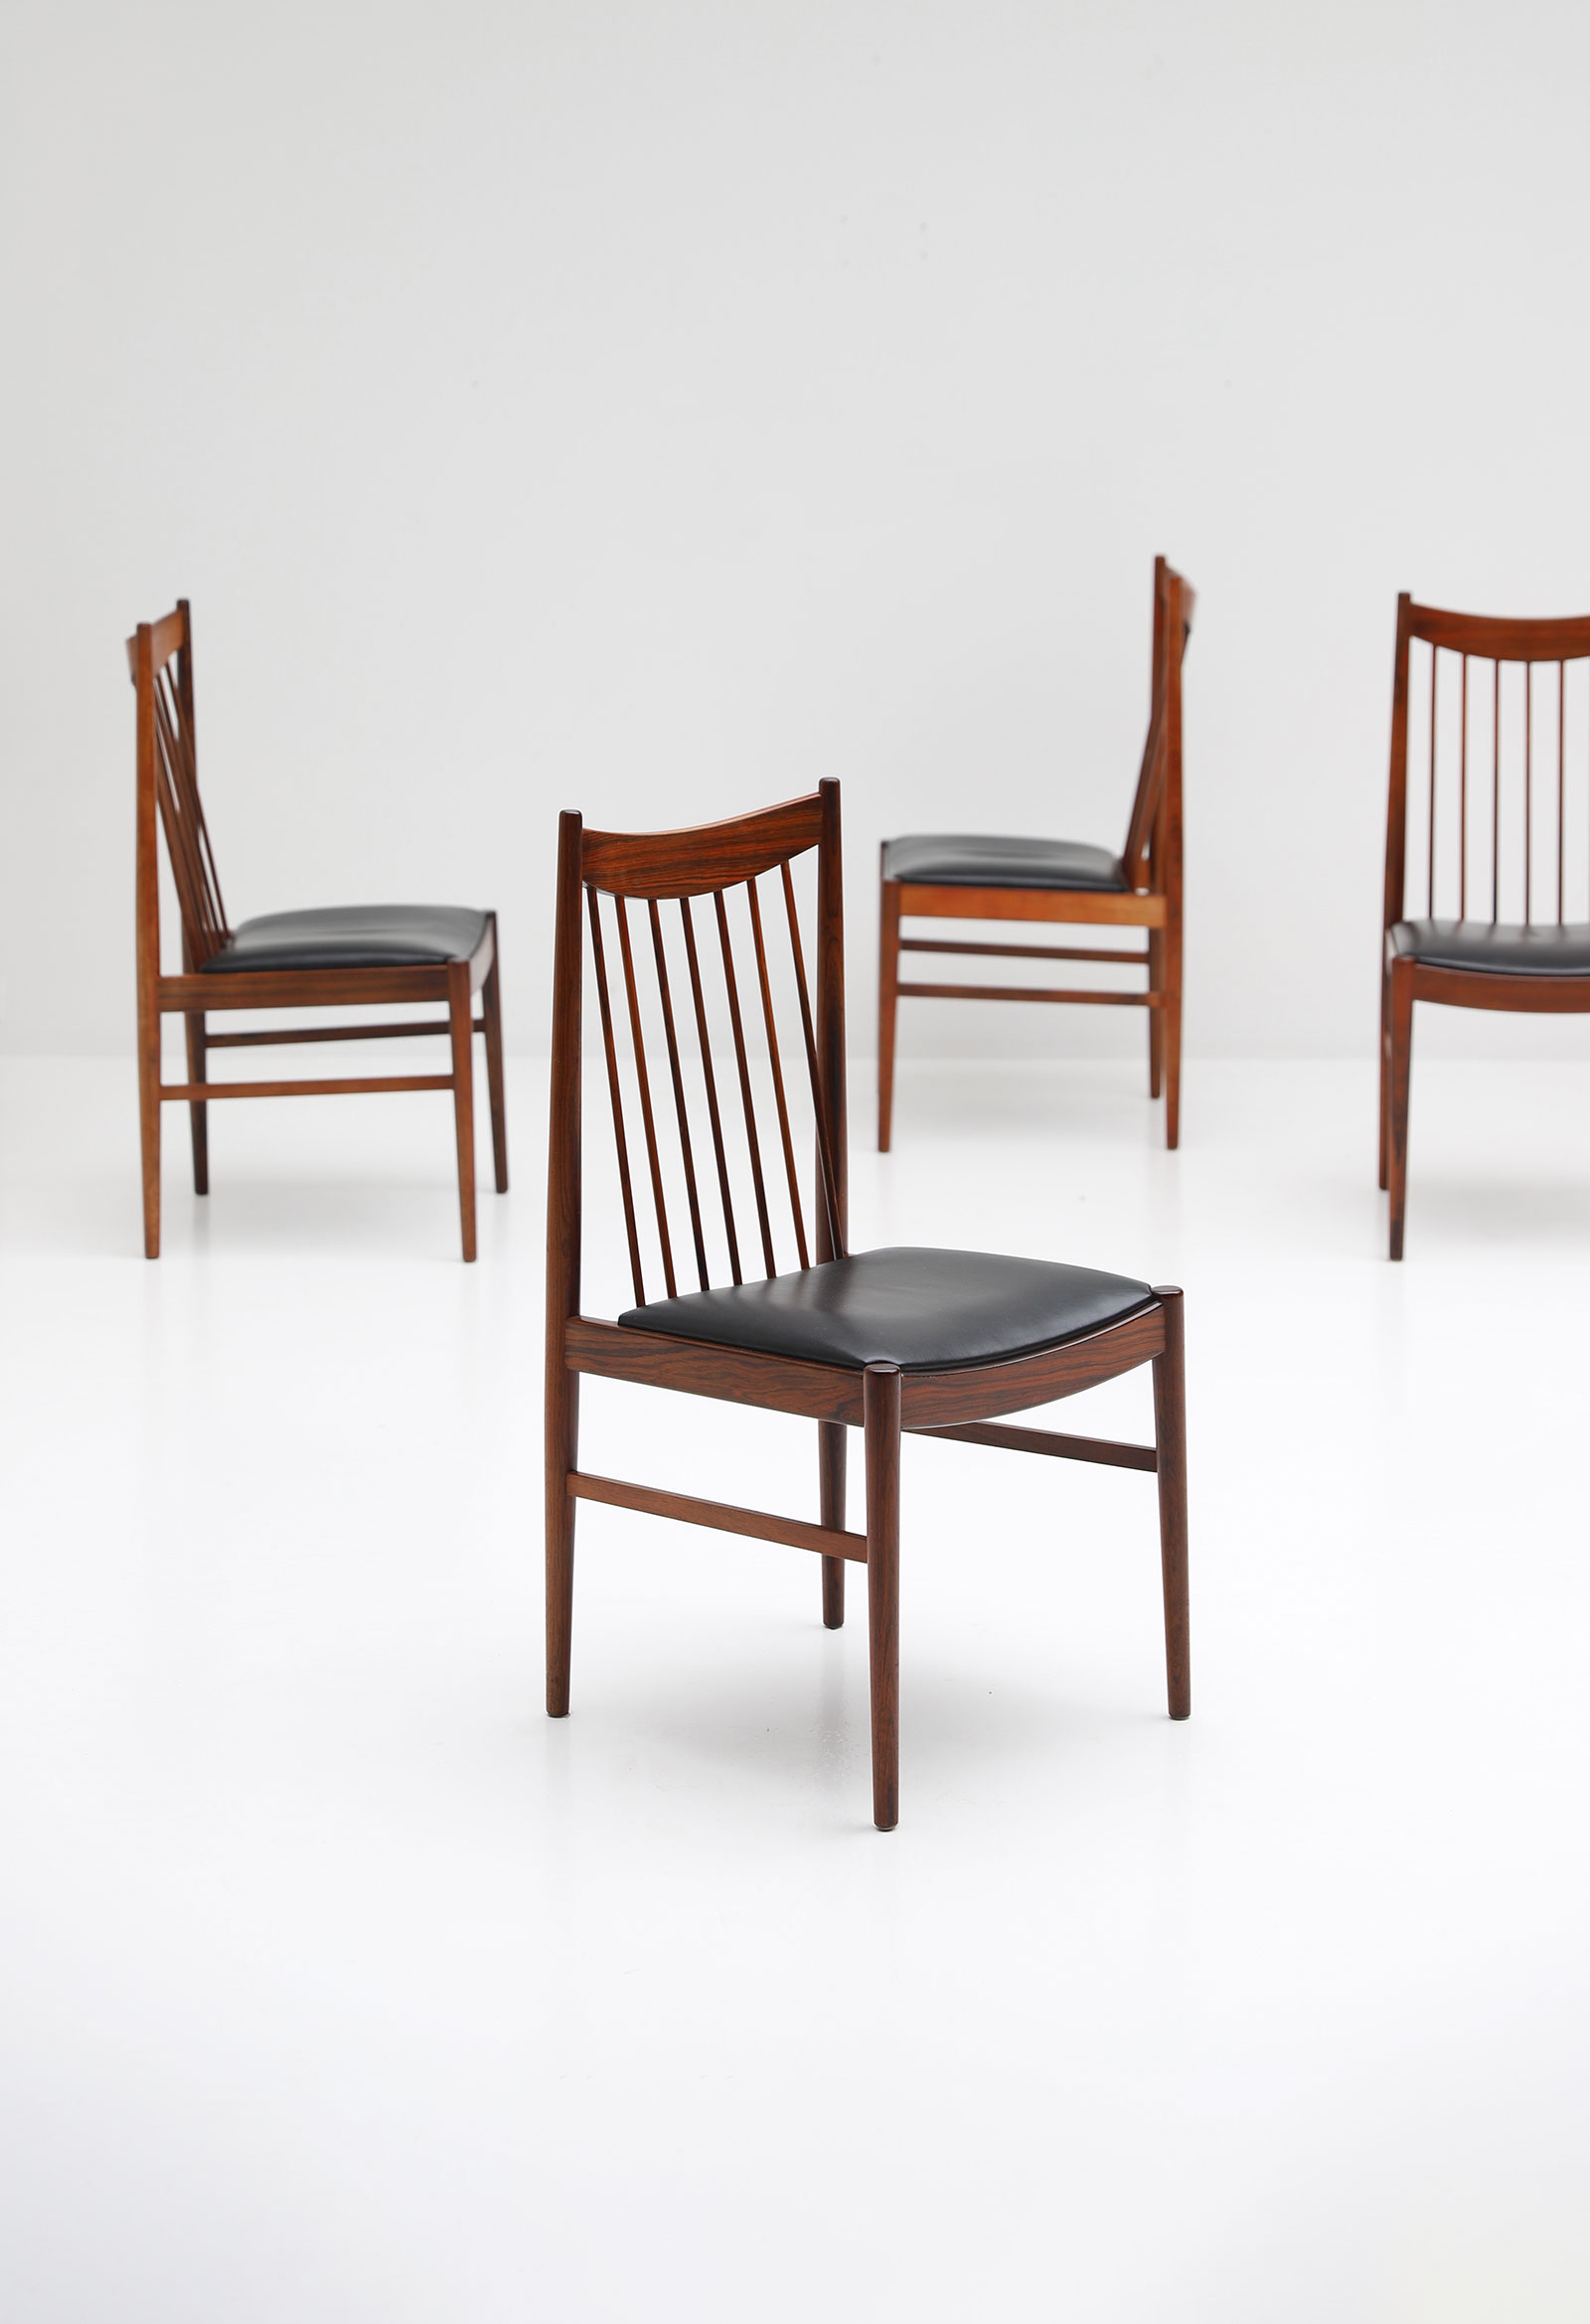 Rosewood Dining Chairs by Arne Vodder for Sibast, 1960s